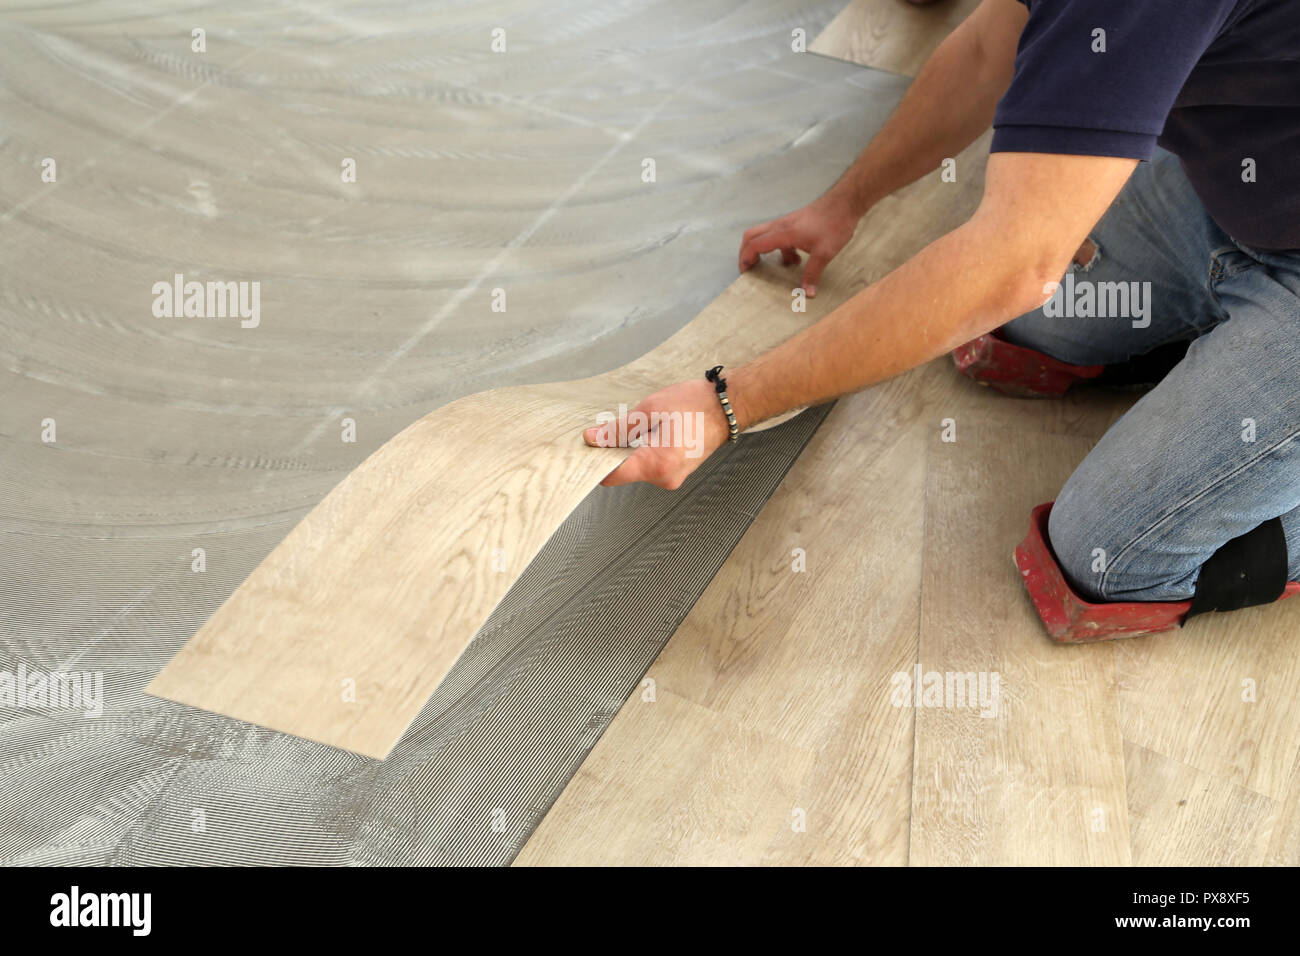 Installing Vinyl Tile Worker Installing New Vinyl Tile Floor Stock Photo 222701897 Alamy